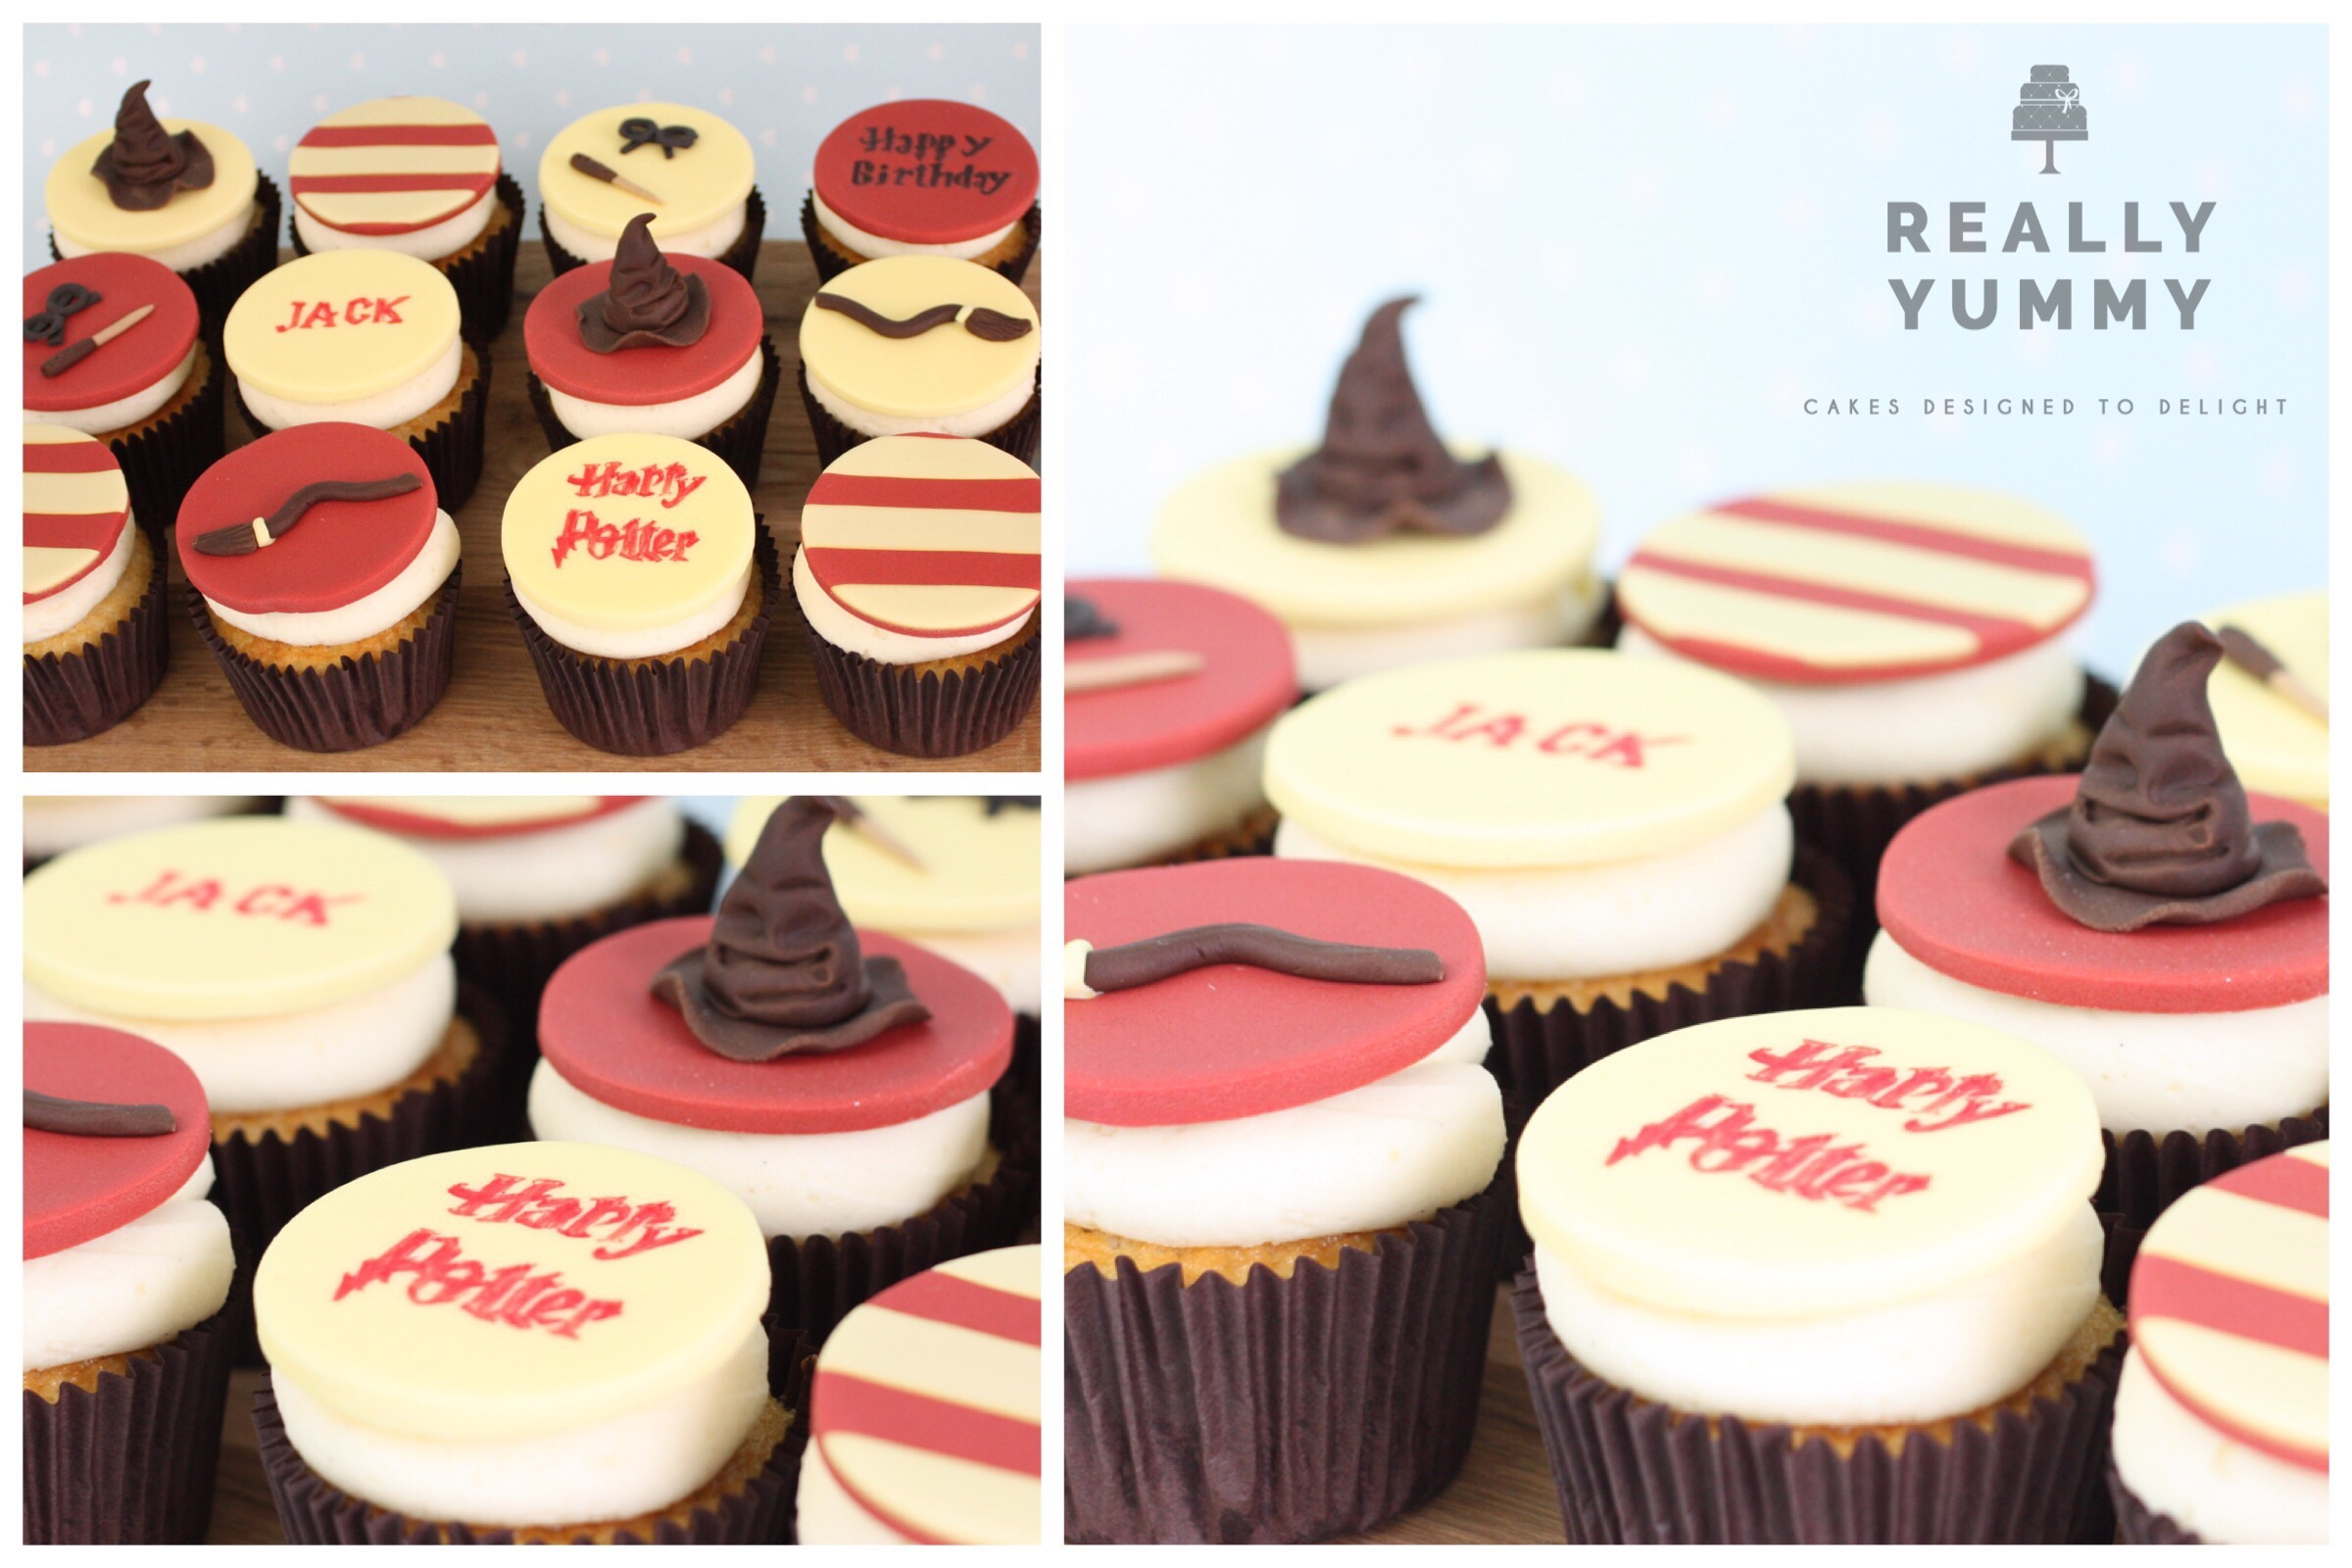 Harry Potter cupcakes with sorting hat